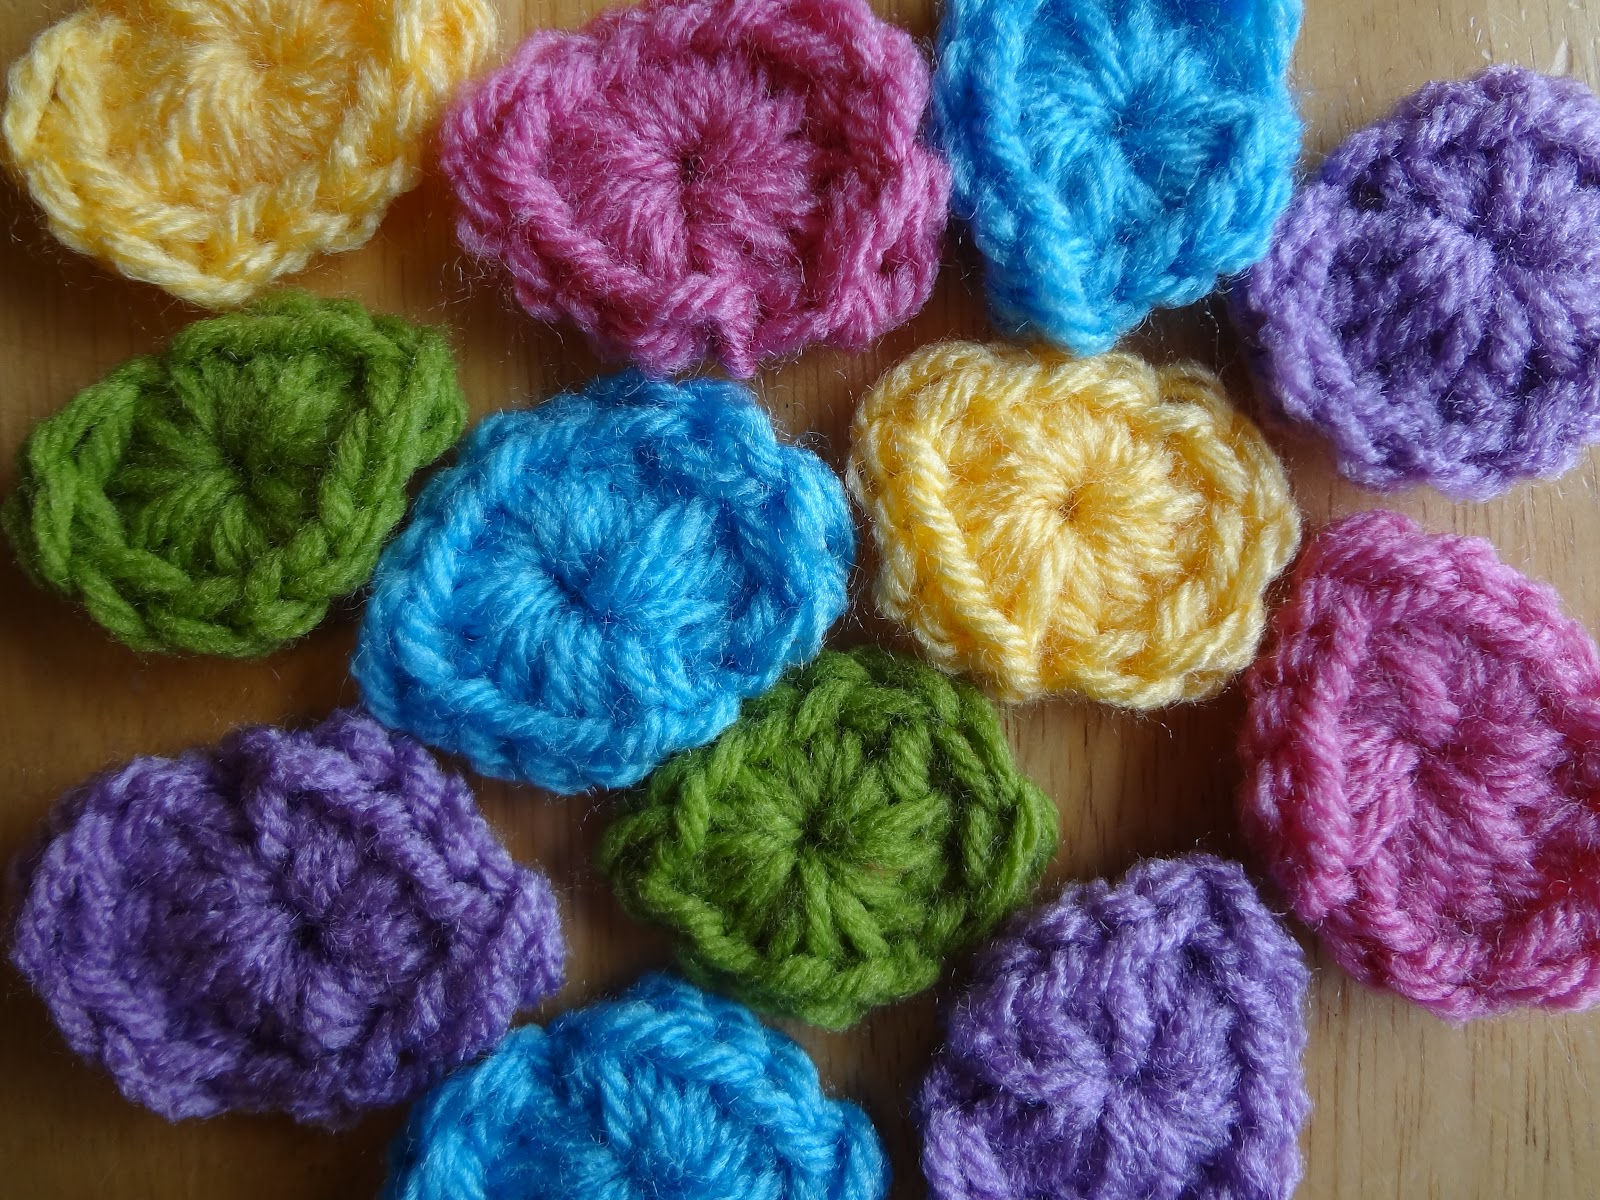 Crochet Patterns Medium Weight Yarn : FREE CROCHET PATTERNS FOR WORSTED WEIGHT YARN Crochet Tutorials